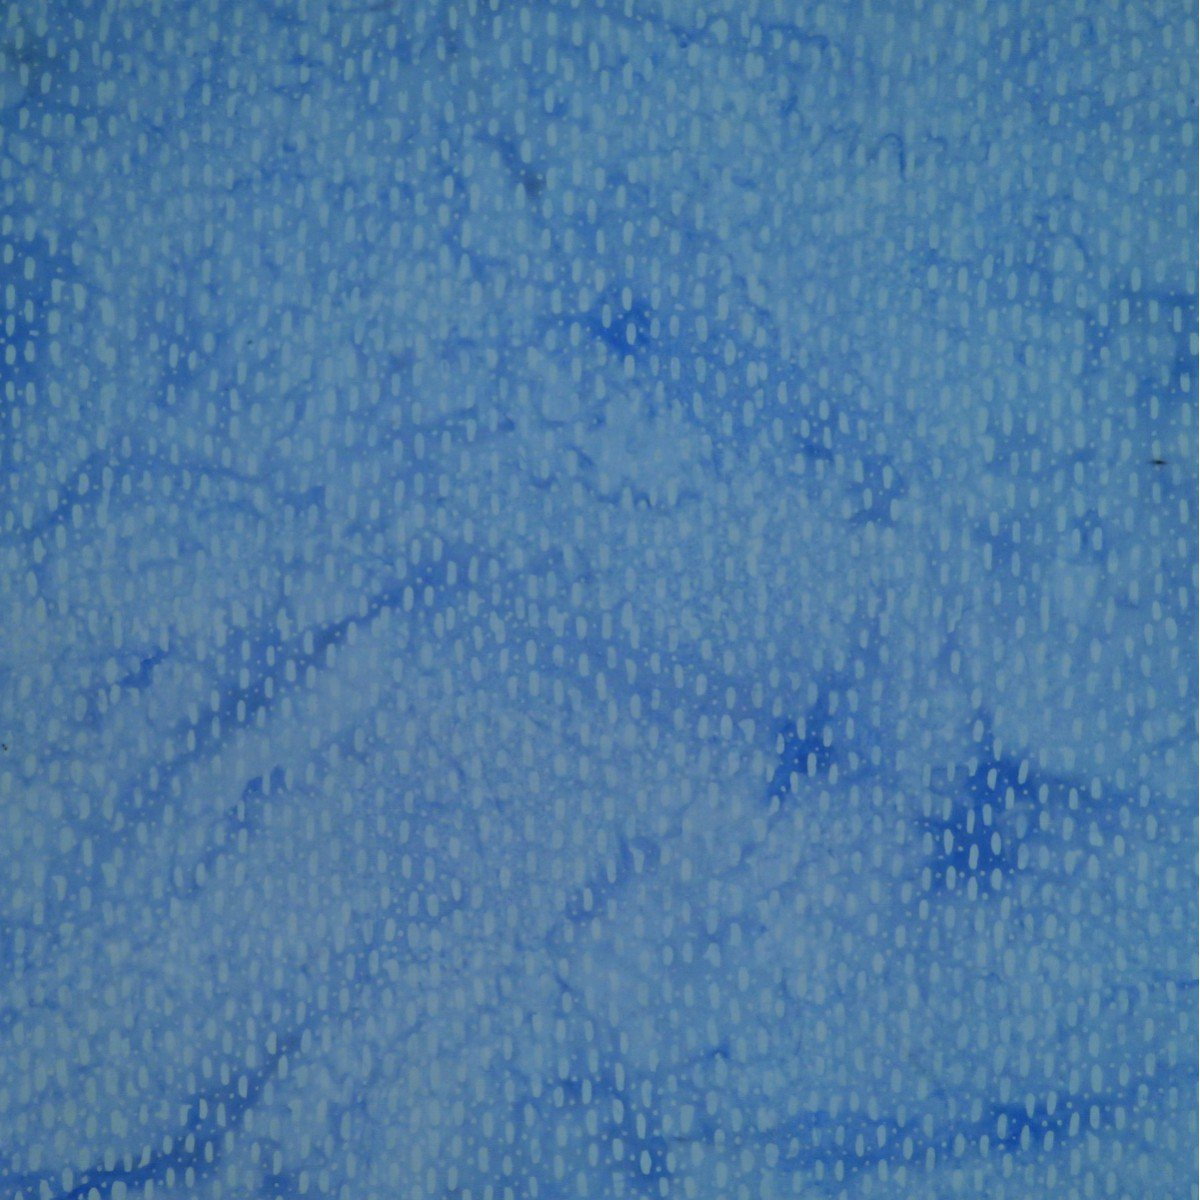 Batik by Mirah Dream Droplets DE-6-9368^